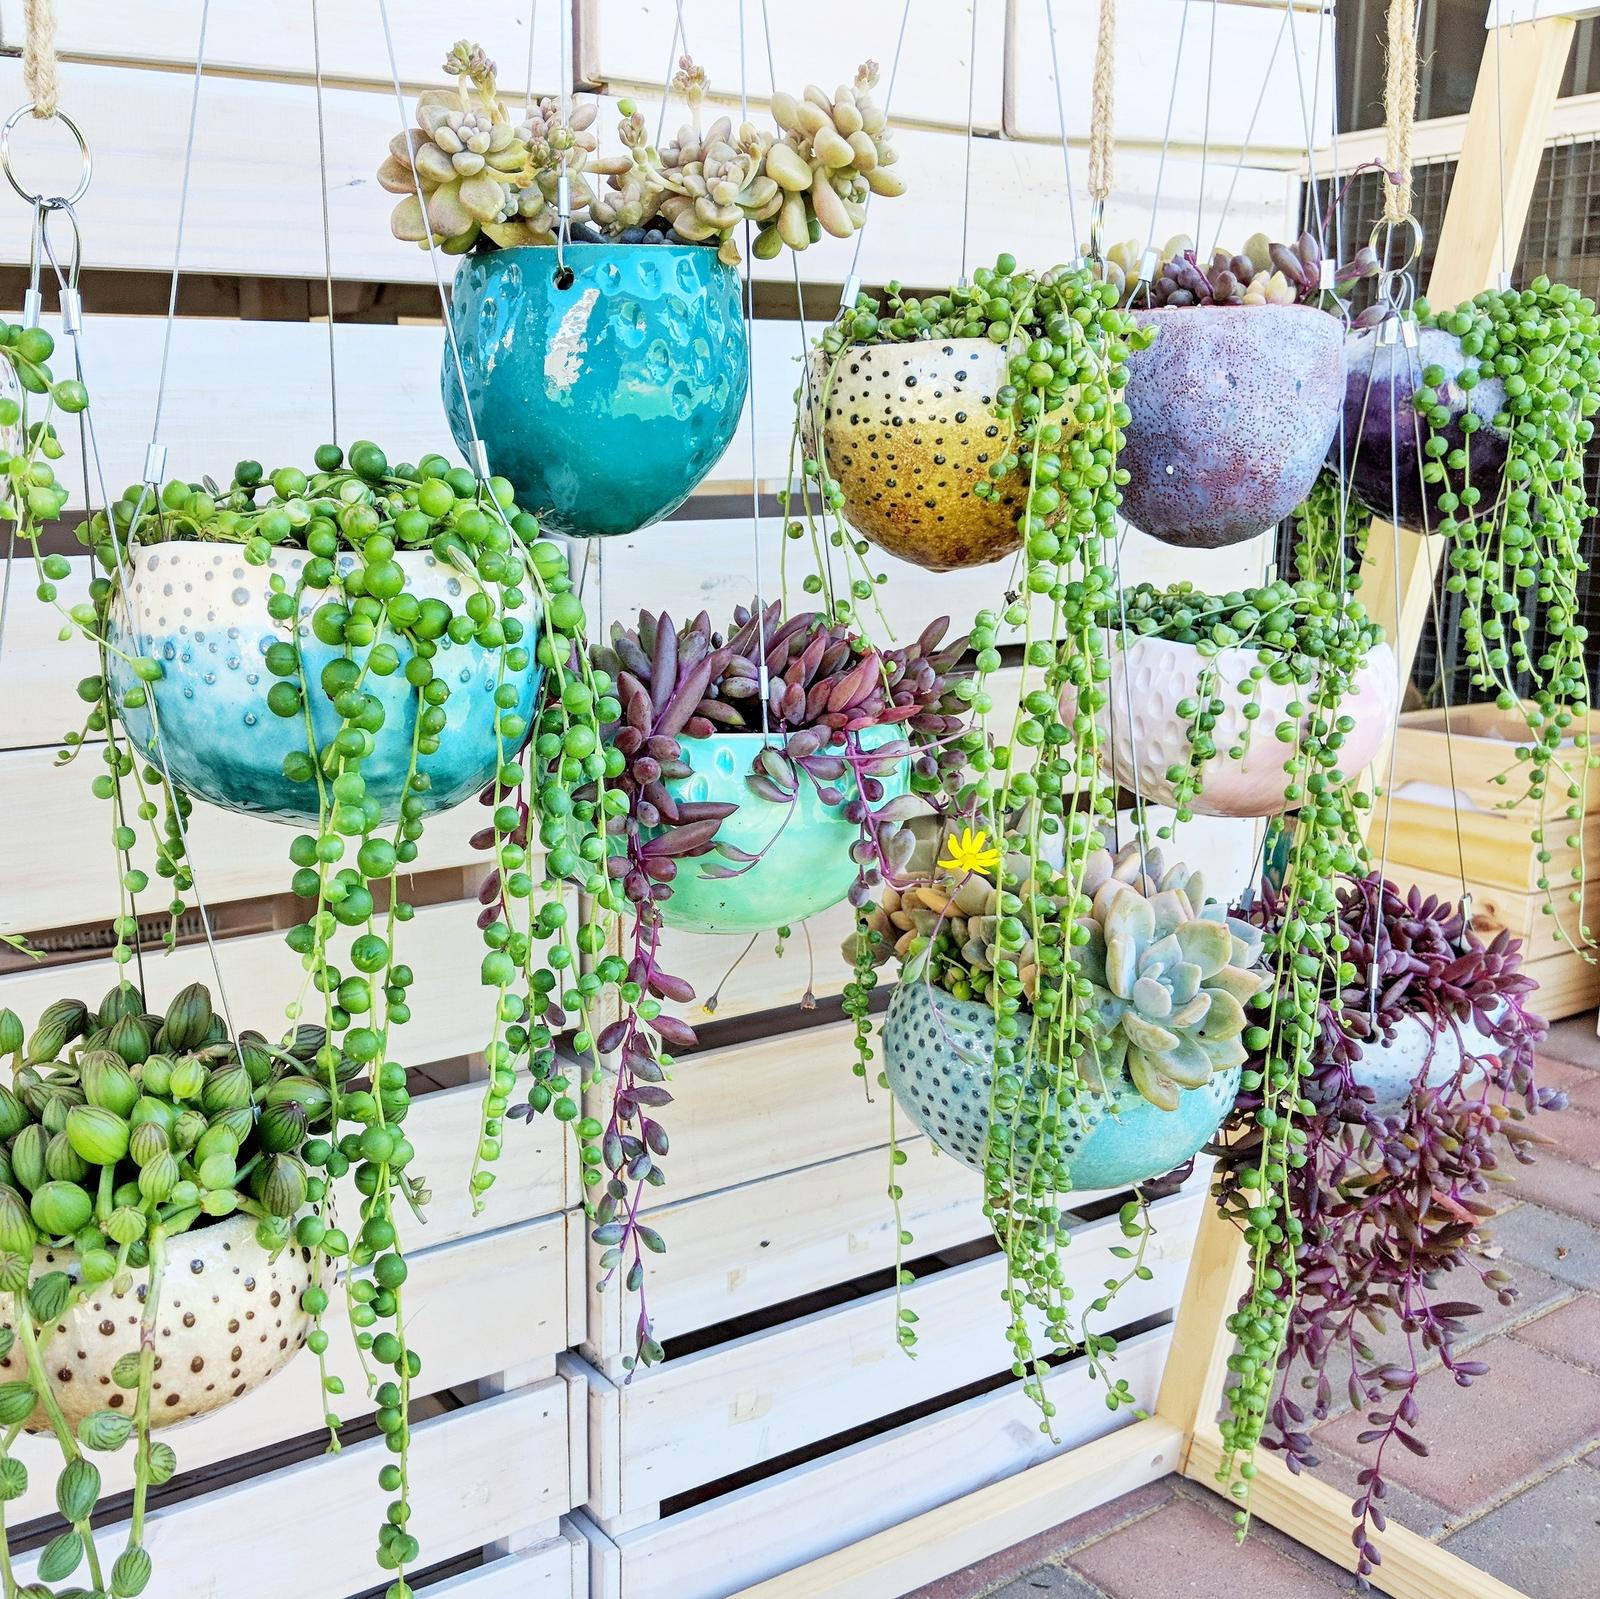 Succulents in handmade hanging planters